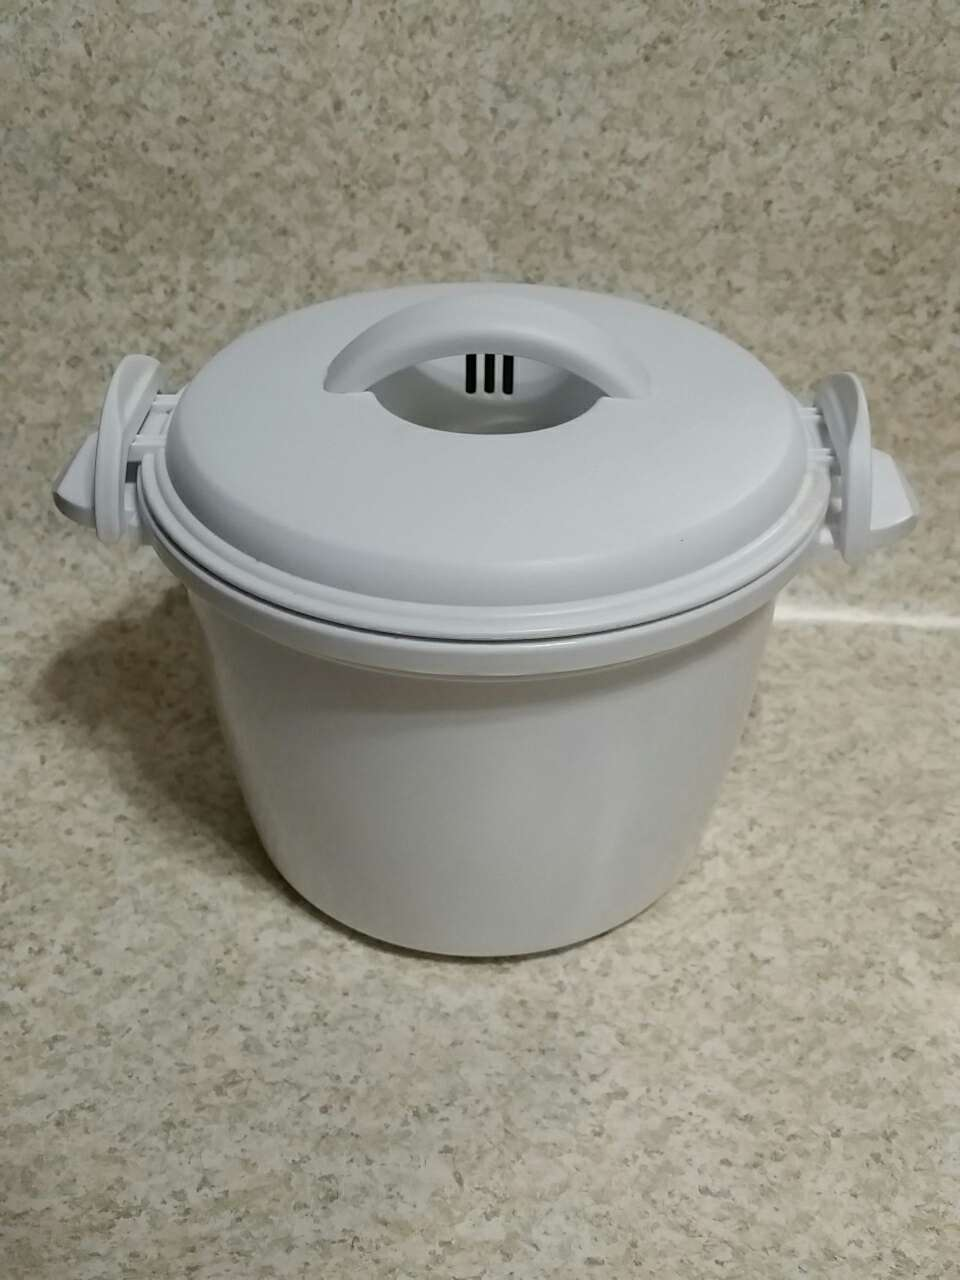 microwave rice cooker how to use